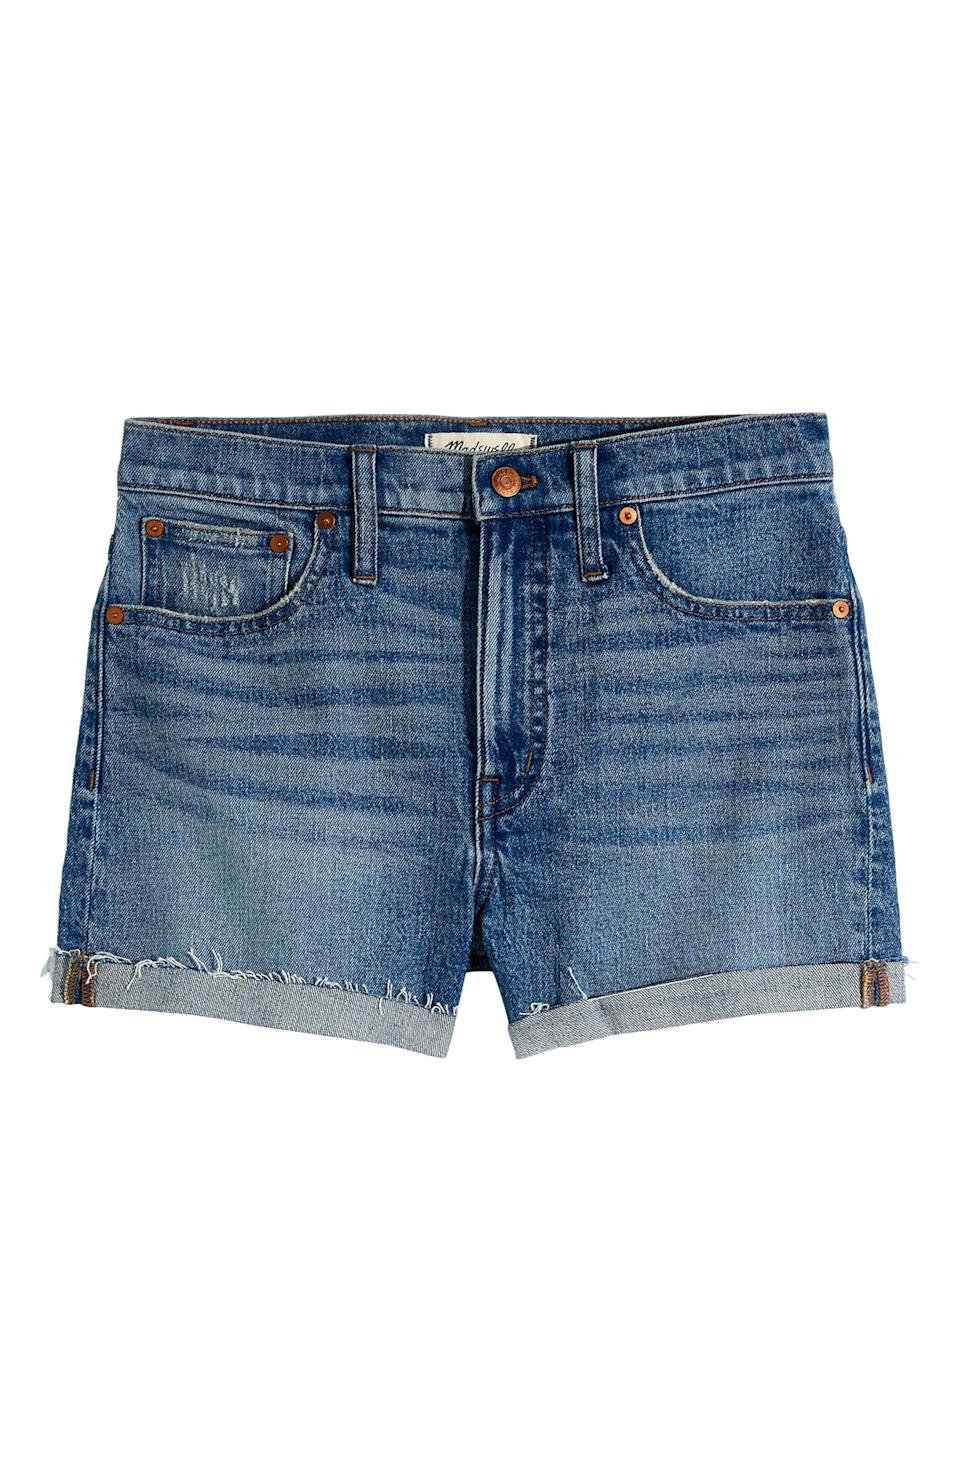 Madewell High Waist Denim Shorts. Image via Nordstrom.